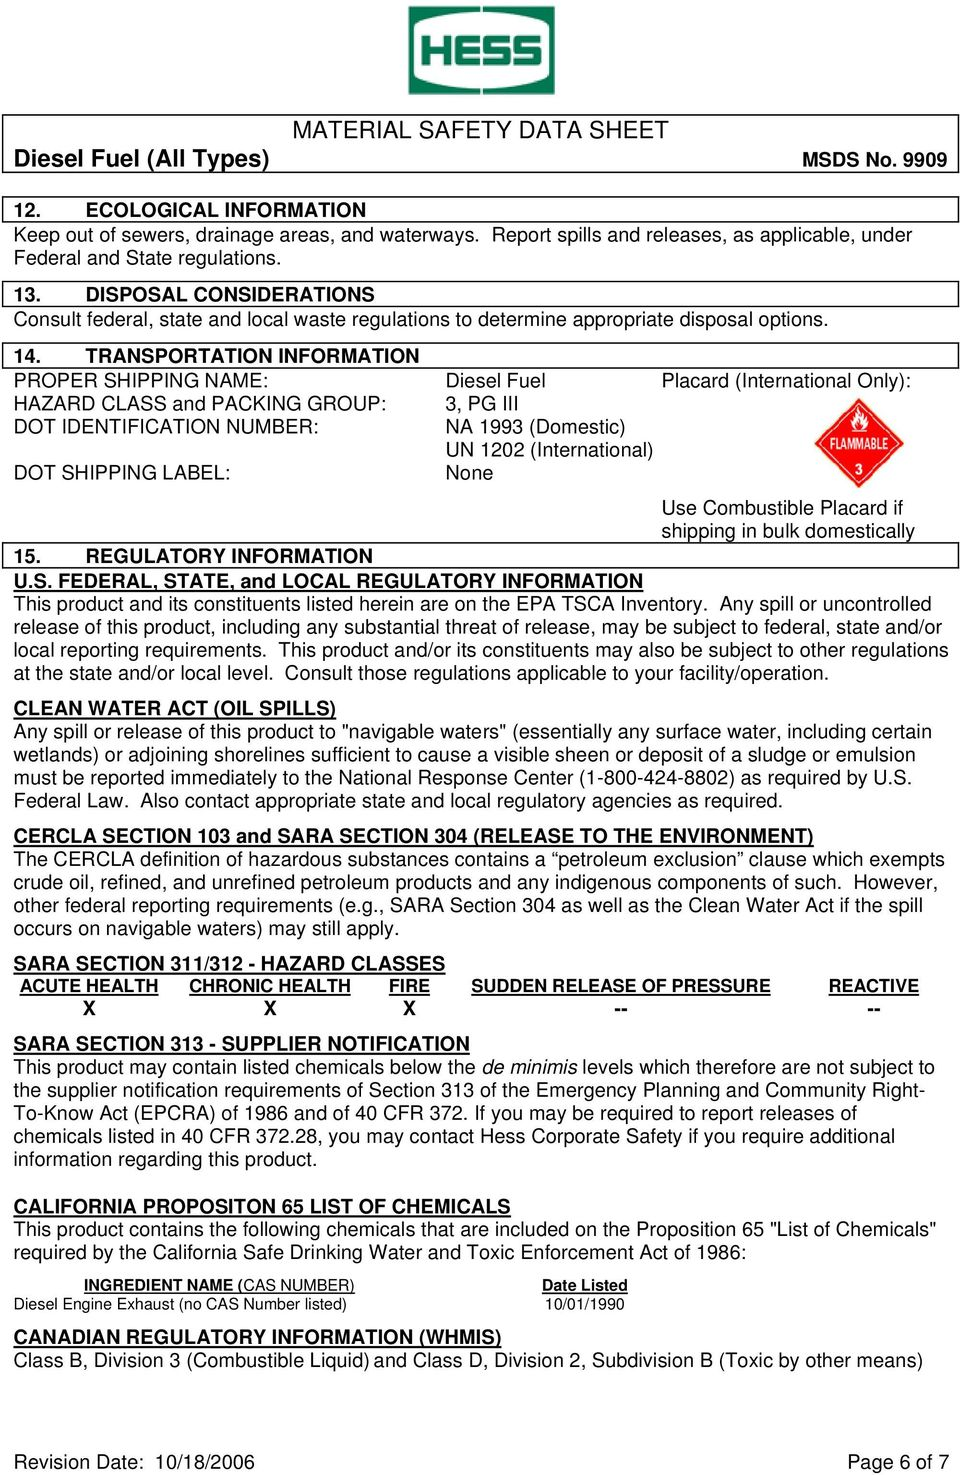 Material Safety Data Sheet Diesel Fuel All Types Msds No Pdf Free Download